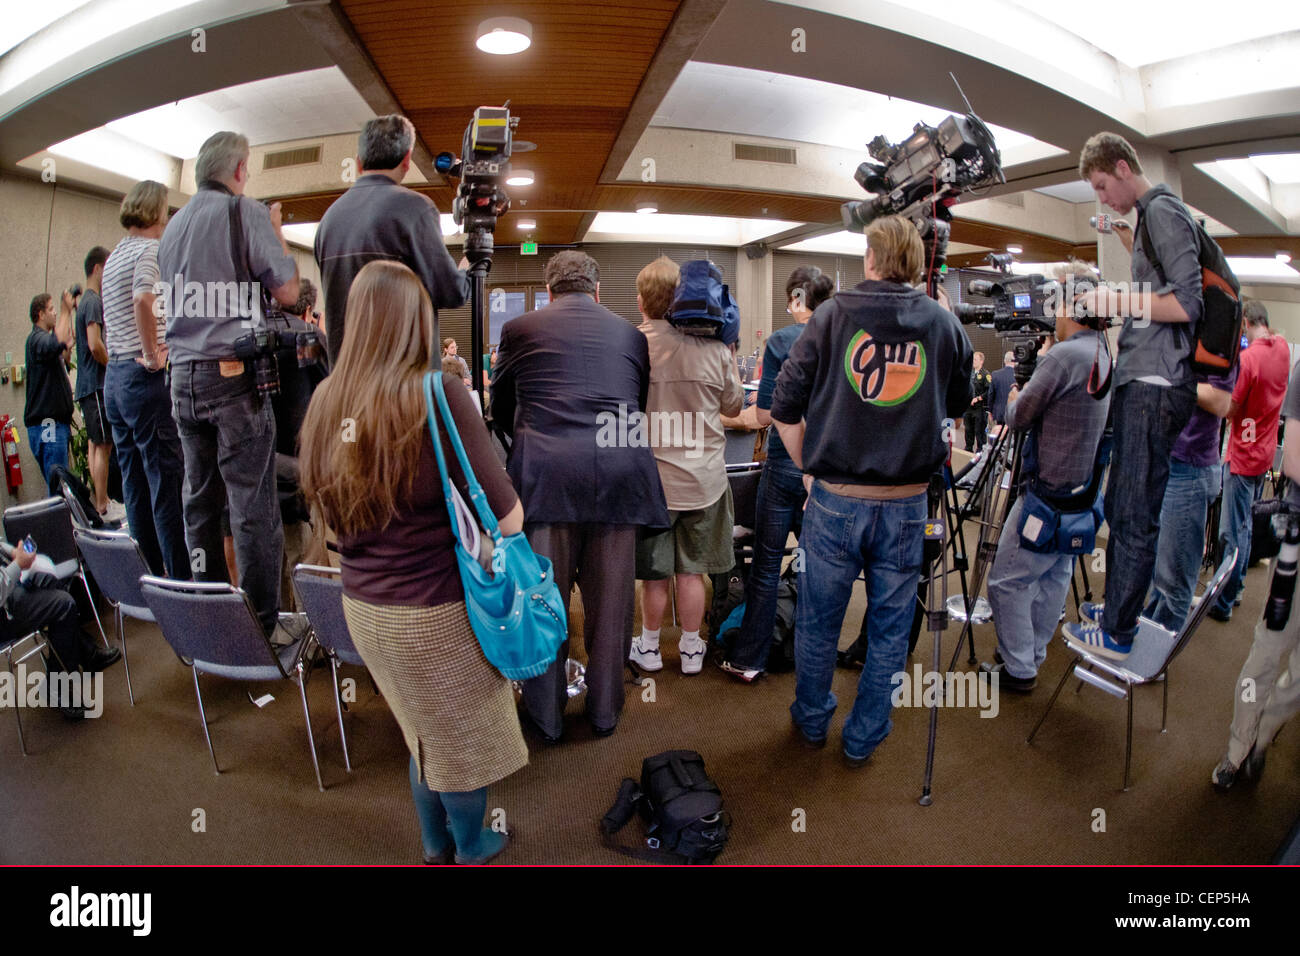 Photographers and television crews cover a student protest over tuition increases at the University of California - Stock Image